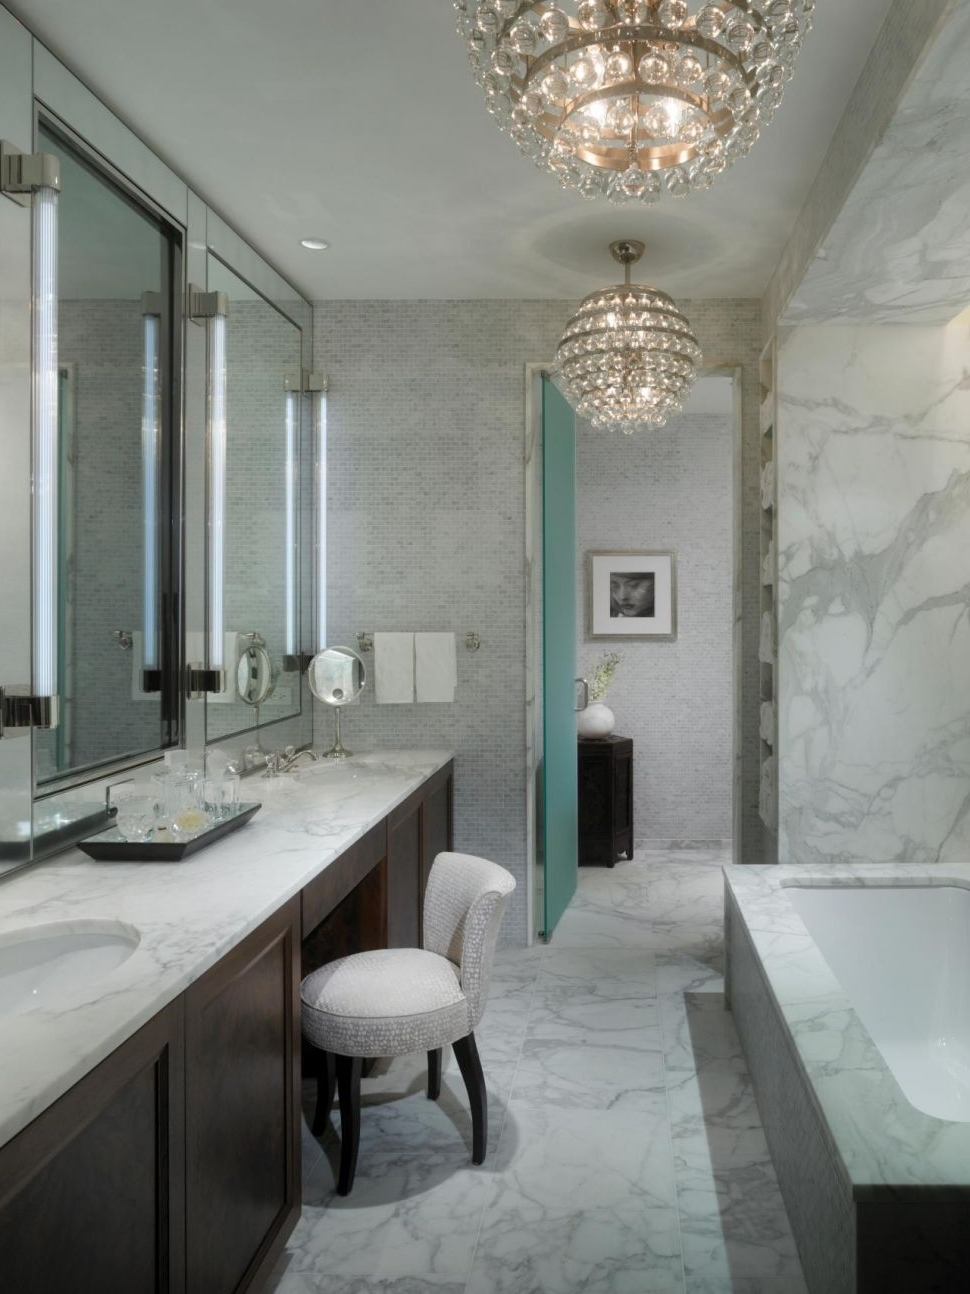 Crystal Bathroom Chandelier within Most Up-to-Date Chandeliers : Mini Chandelier For Bathroom New Bathroom Ideas